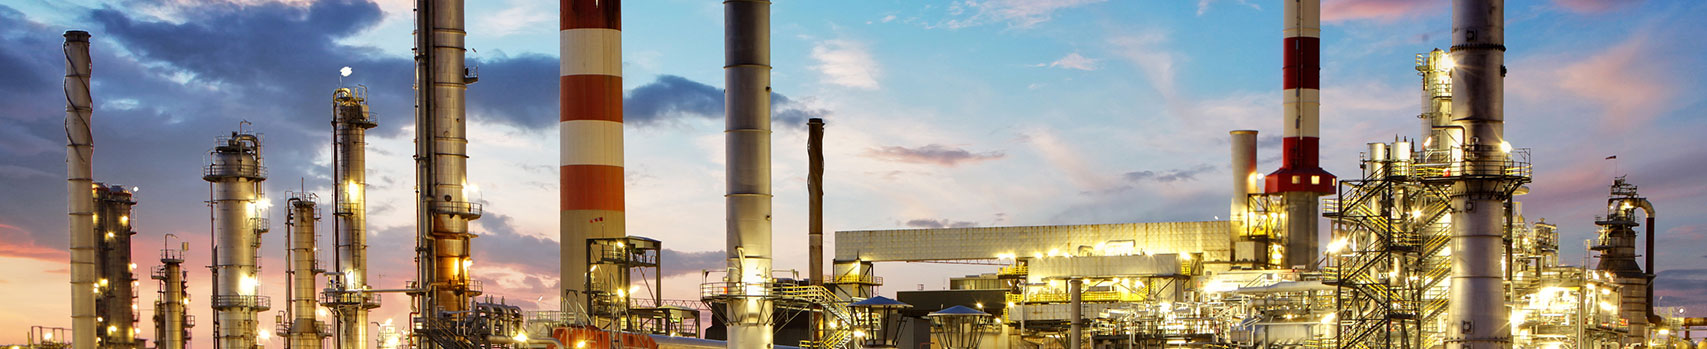 /industry/Petrochemical/